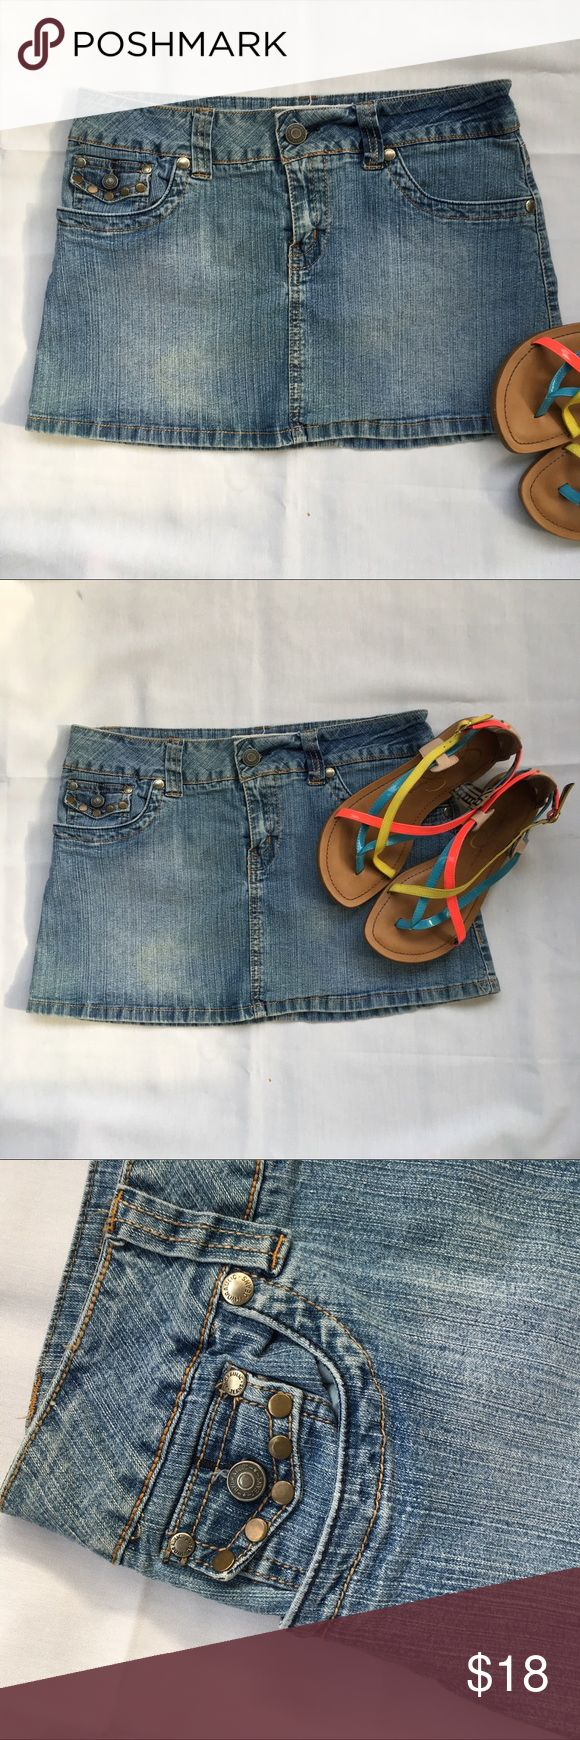 Hydraulic Jean Skirt Hydraulic Jean Skirt , in ECU excellent used condition. Fabric content is 53 % ramine , 27 cotton , 18 polyester and 1 % rayon. Measuring 15 1/2 inches in waist laying flat and 12 inches long. Size 9/10 Hydraulic Skirts Mini